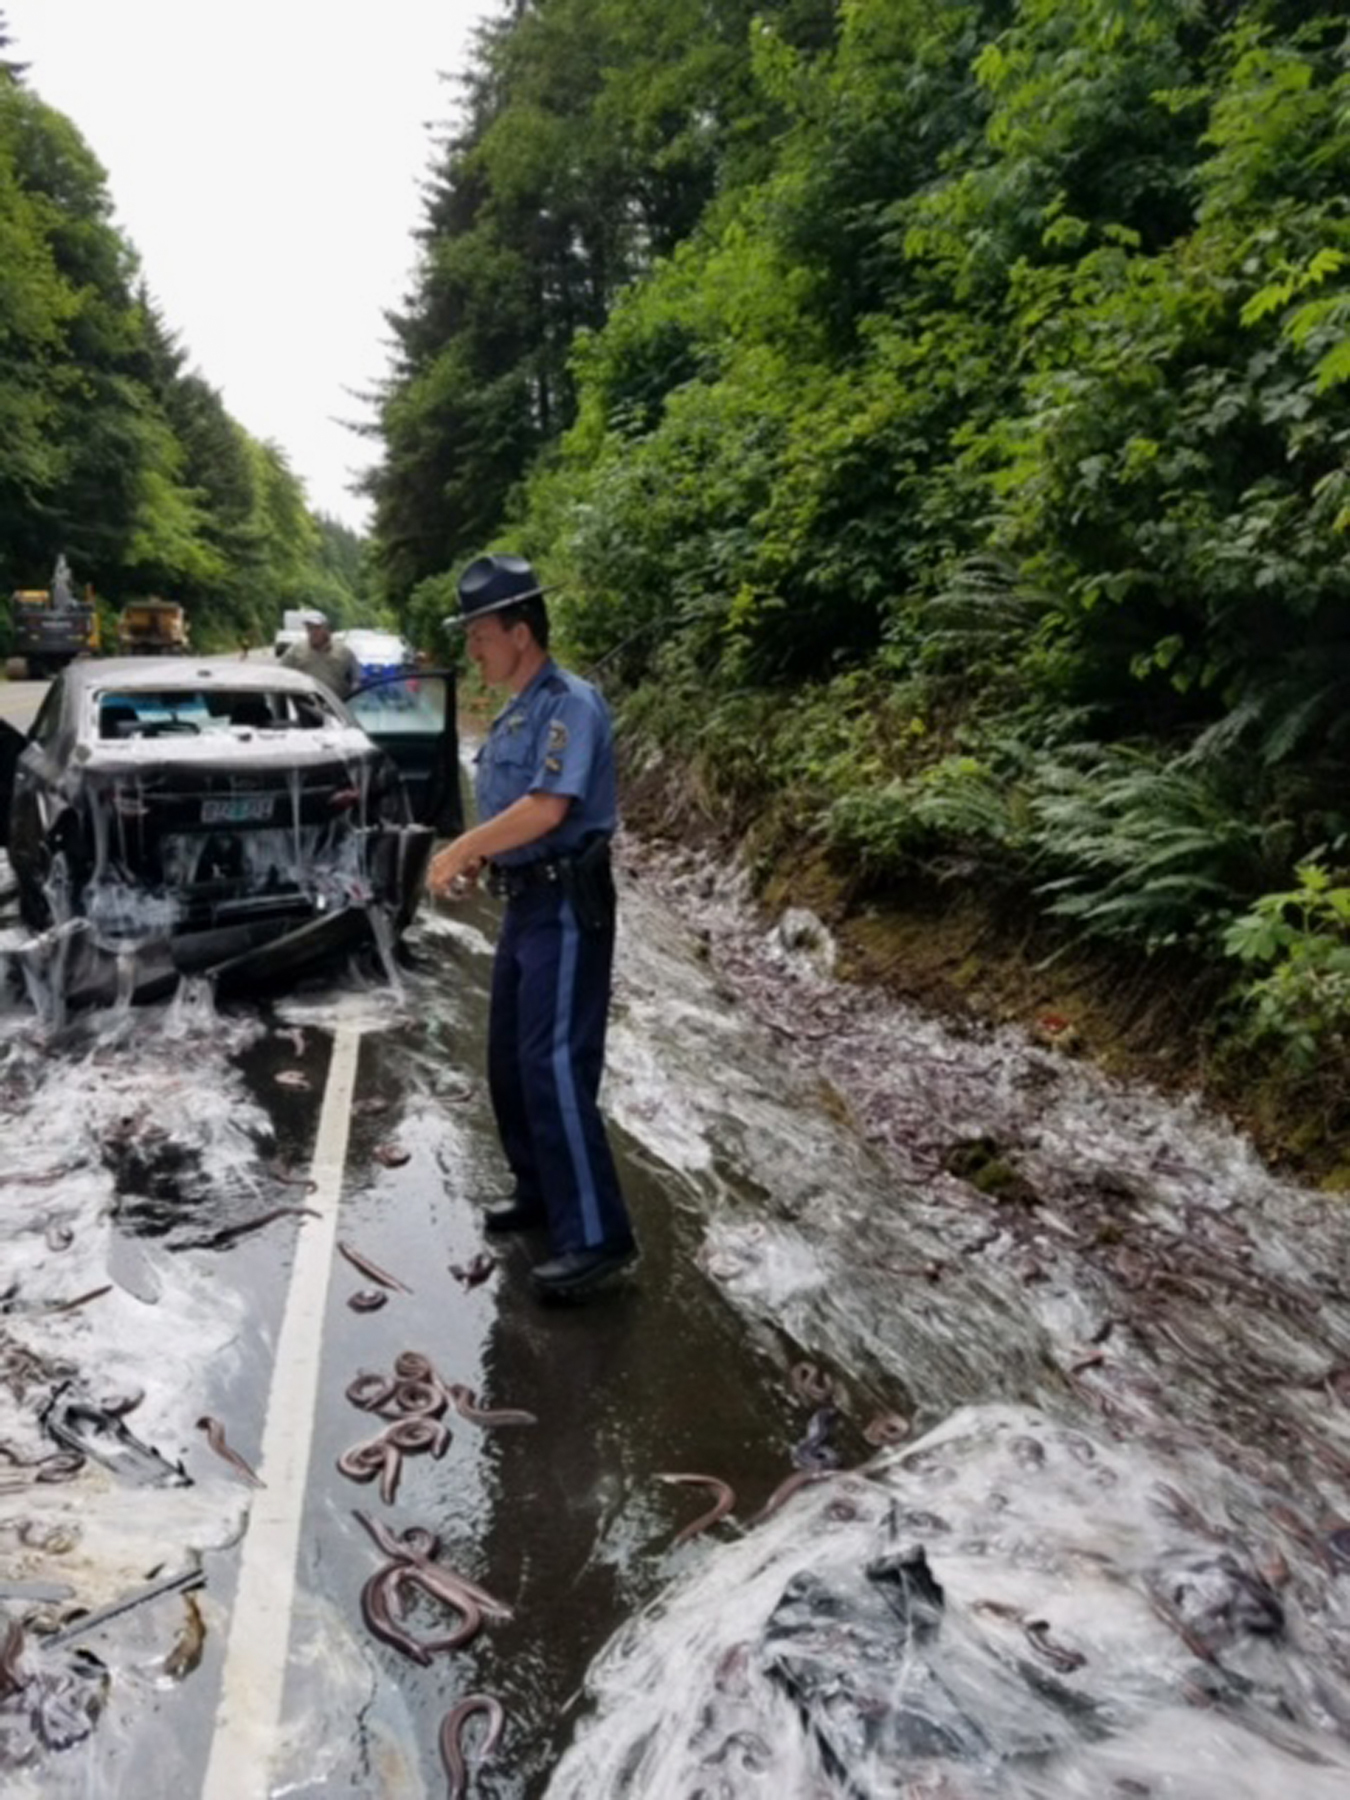 In this photo provided by the Oregon State Police, a state police officer works the site after a truck hauling eels overturned on Highway 101 in Depoe Bay, Ore., Thursday, July 13, 2017. Police said Salvatore Tragale was driving north with 13 containers holding 7,500 pounds (3,402 kilograms) of hagfish, which are commonly known as slime eels. (Oregon State Police/AP)